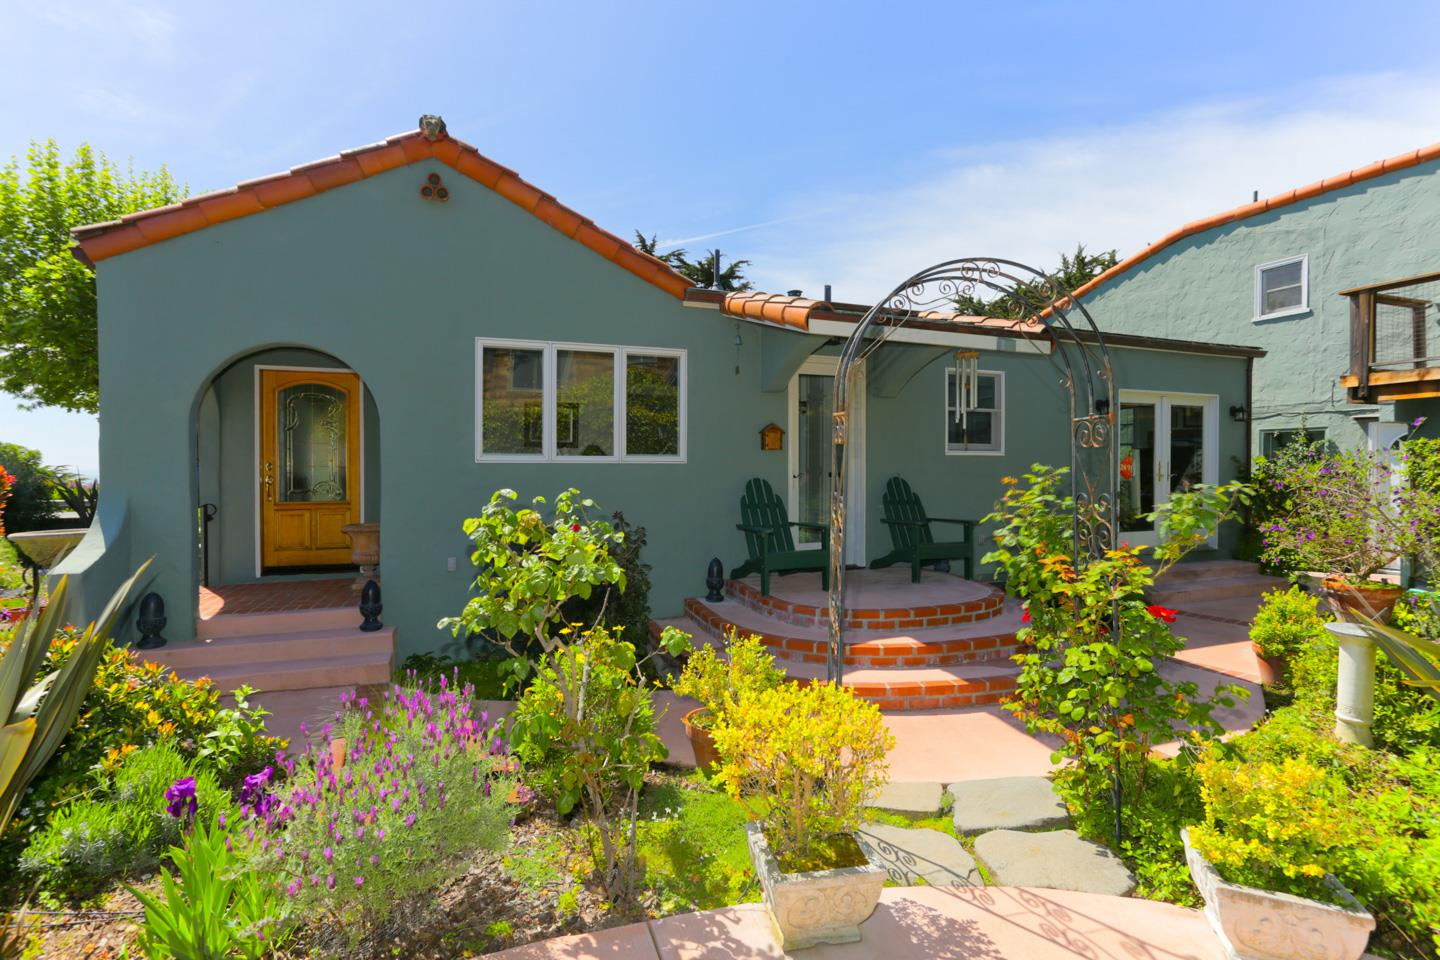 113 4TH AVE, SANTA CRUZ, CA 95062